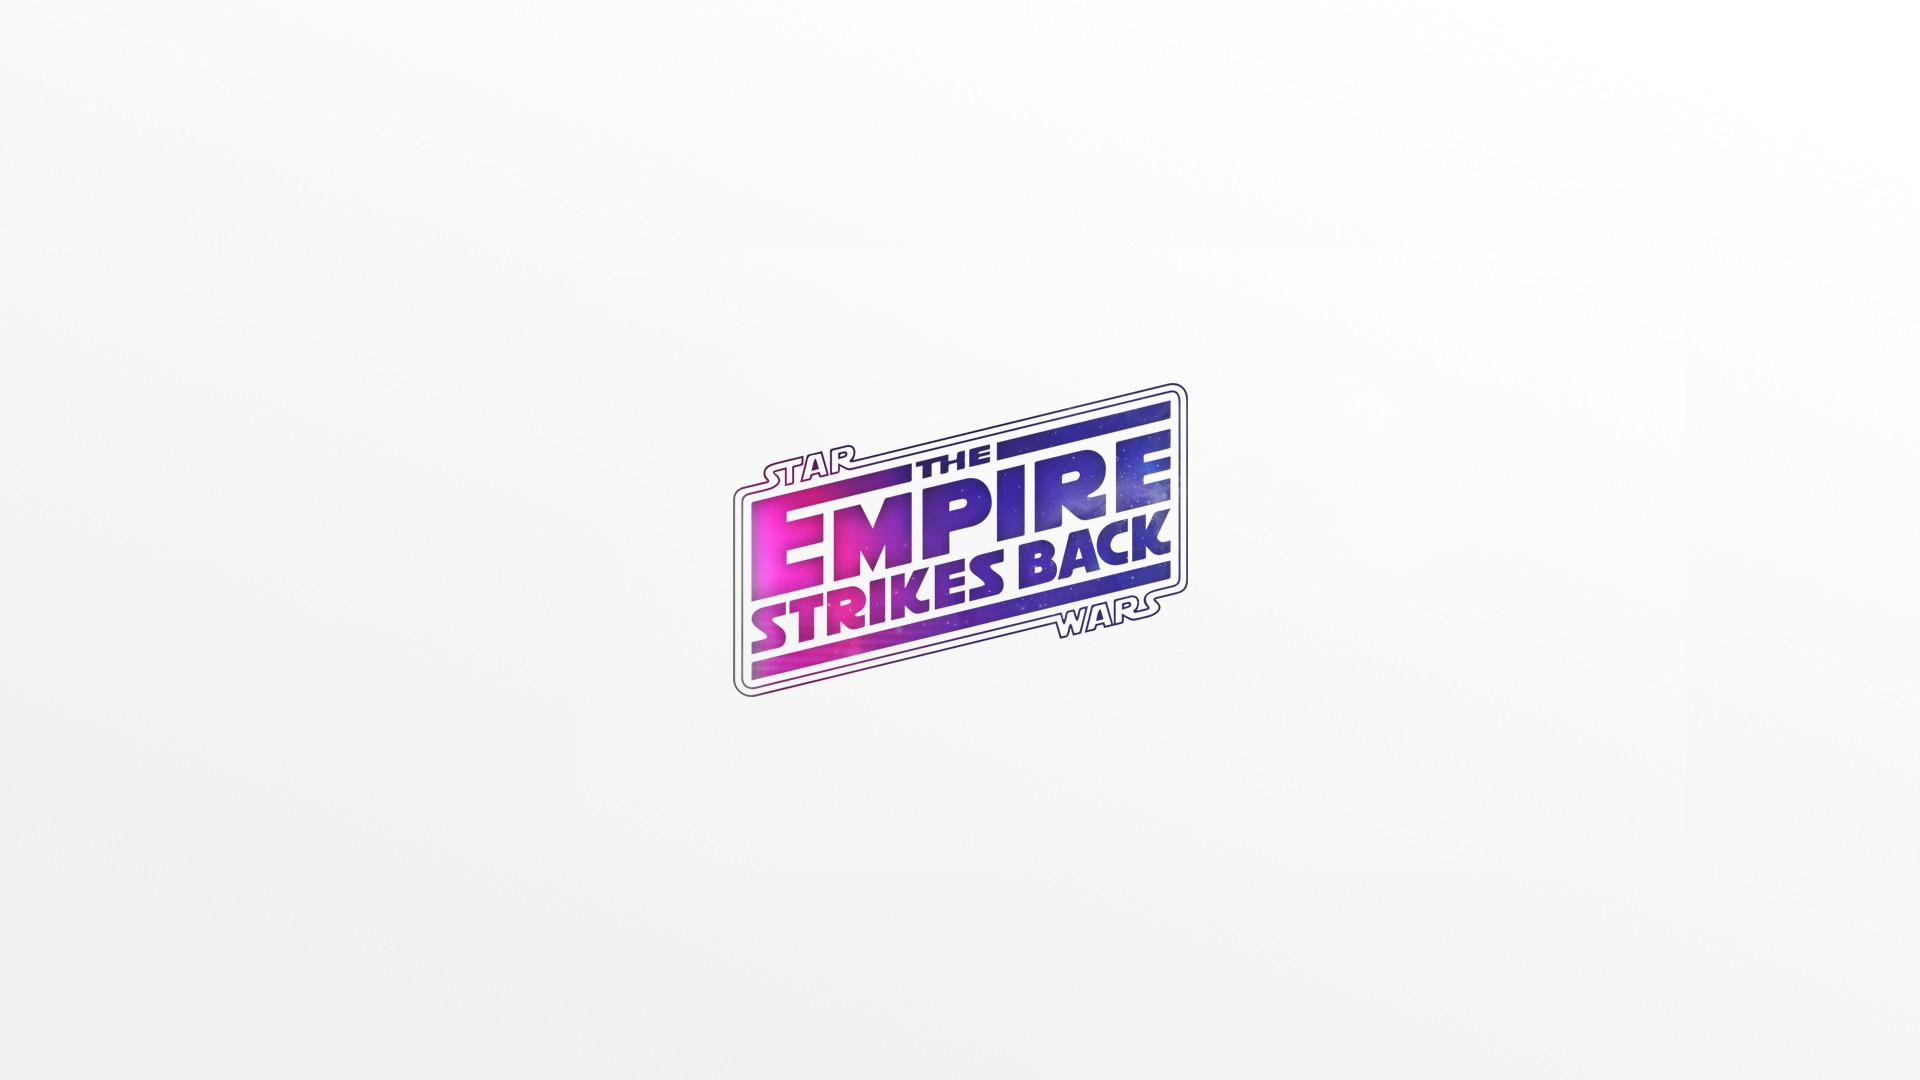 Star Wars Episode V: The Empire Strikes Back Wallpapers, Pictures